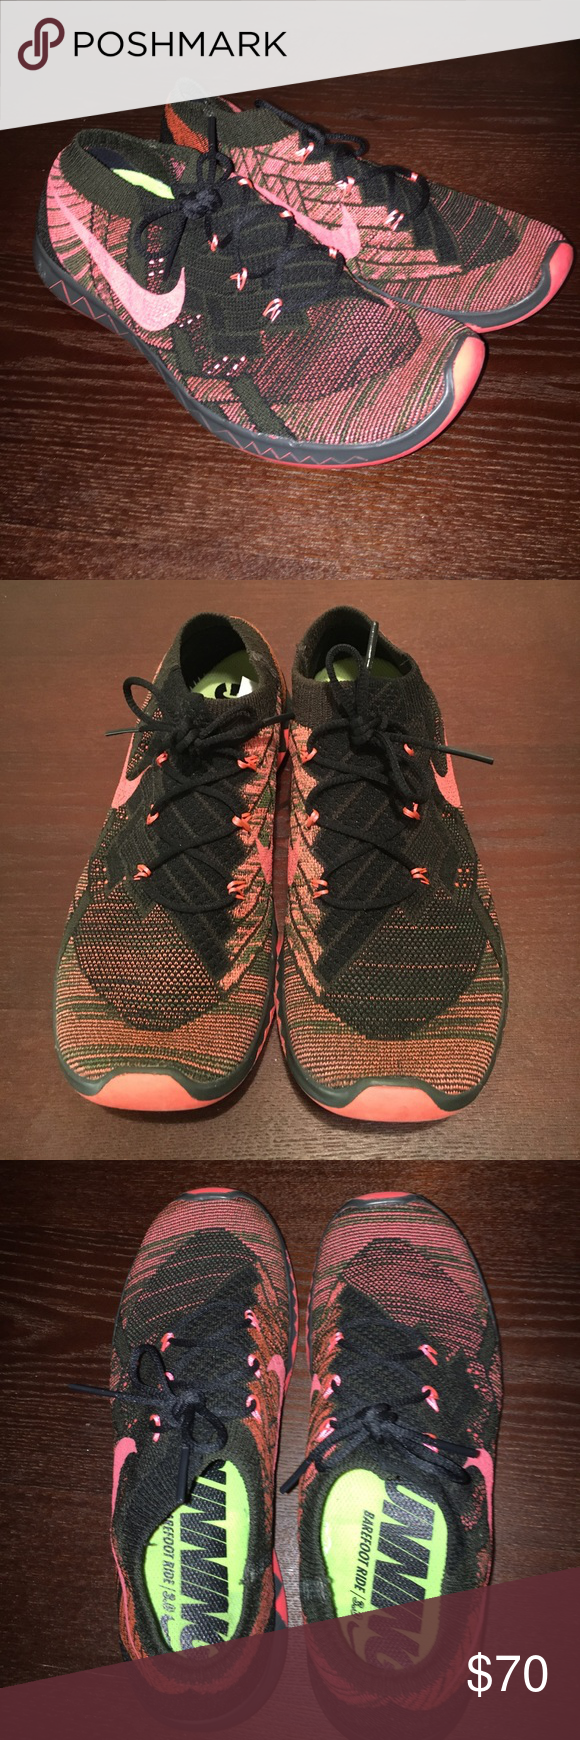 brand new aa454 70910 Super Comfy Nike Free 3.0 Sneakers Only Worn a Few Times, Great Condition!  Coral